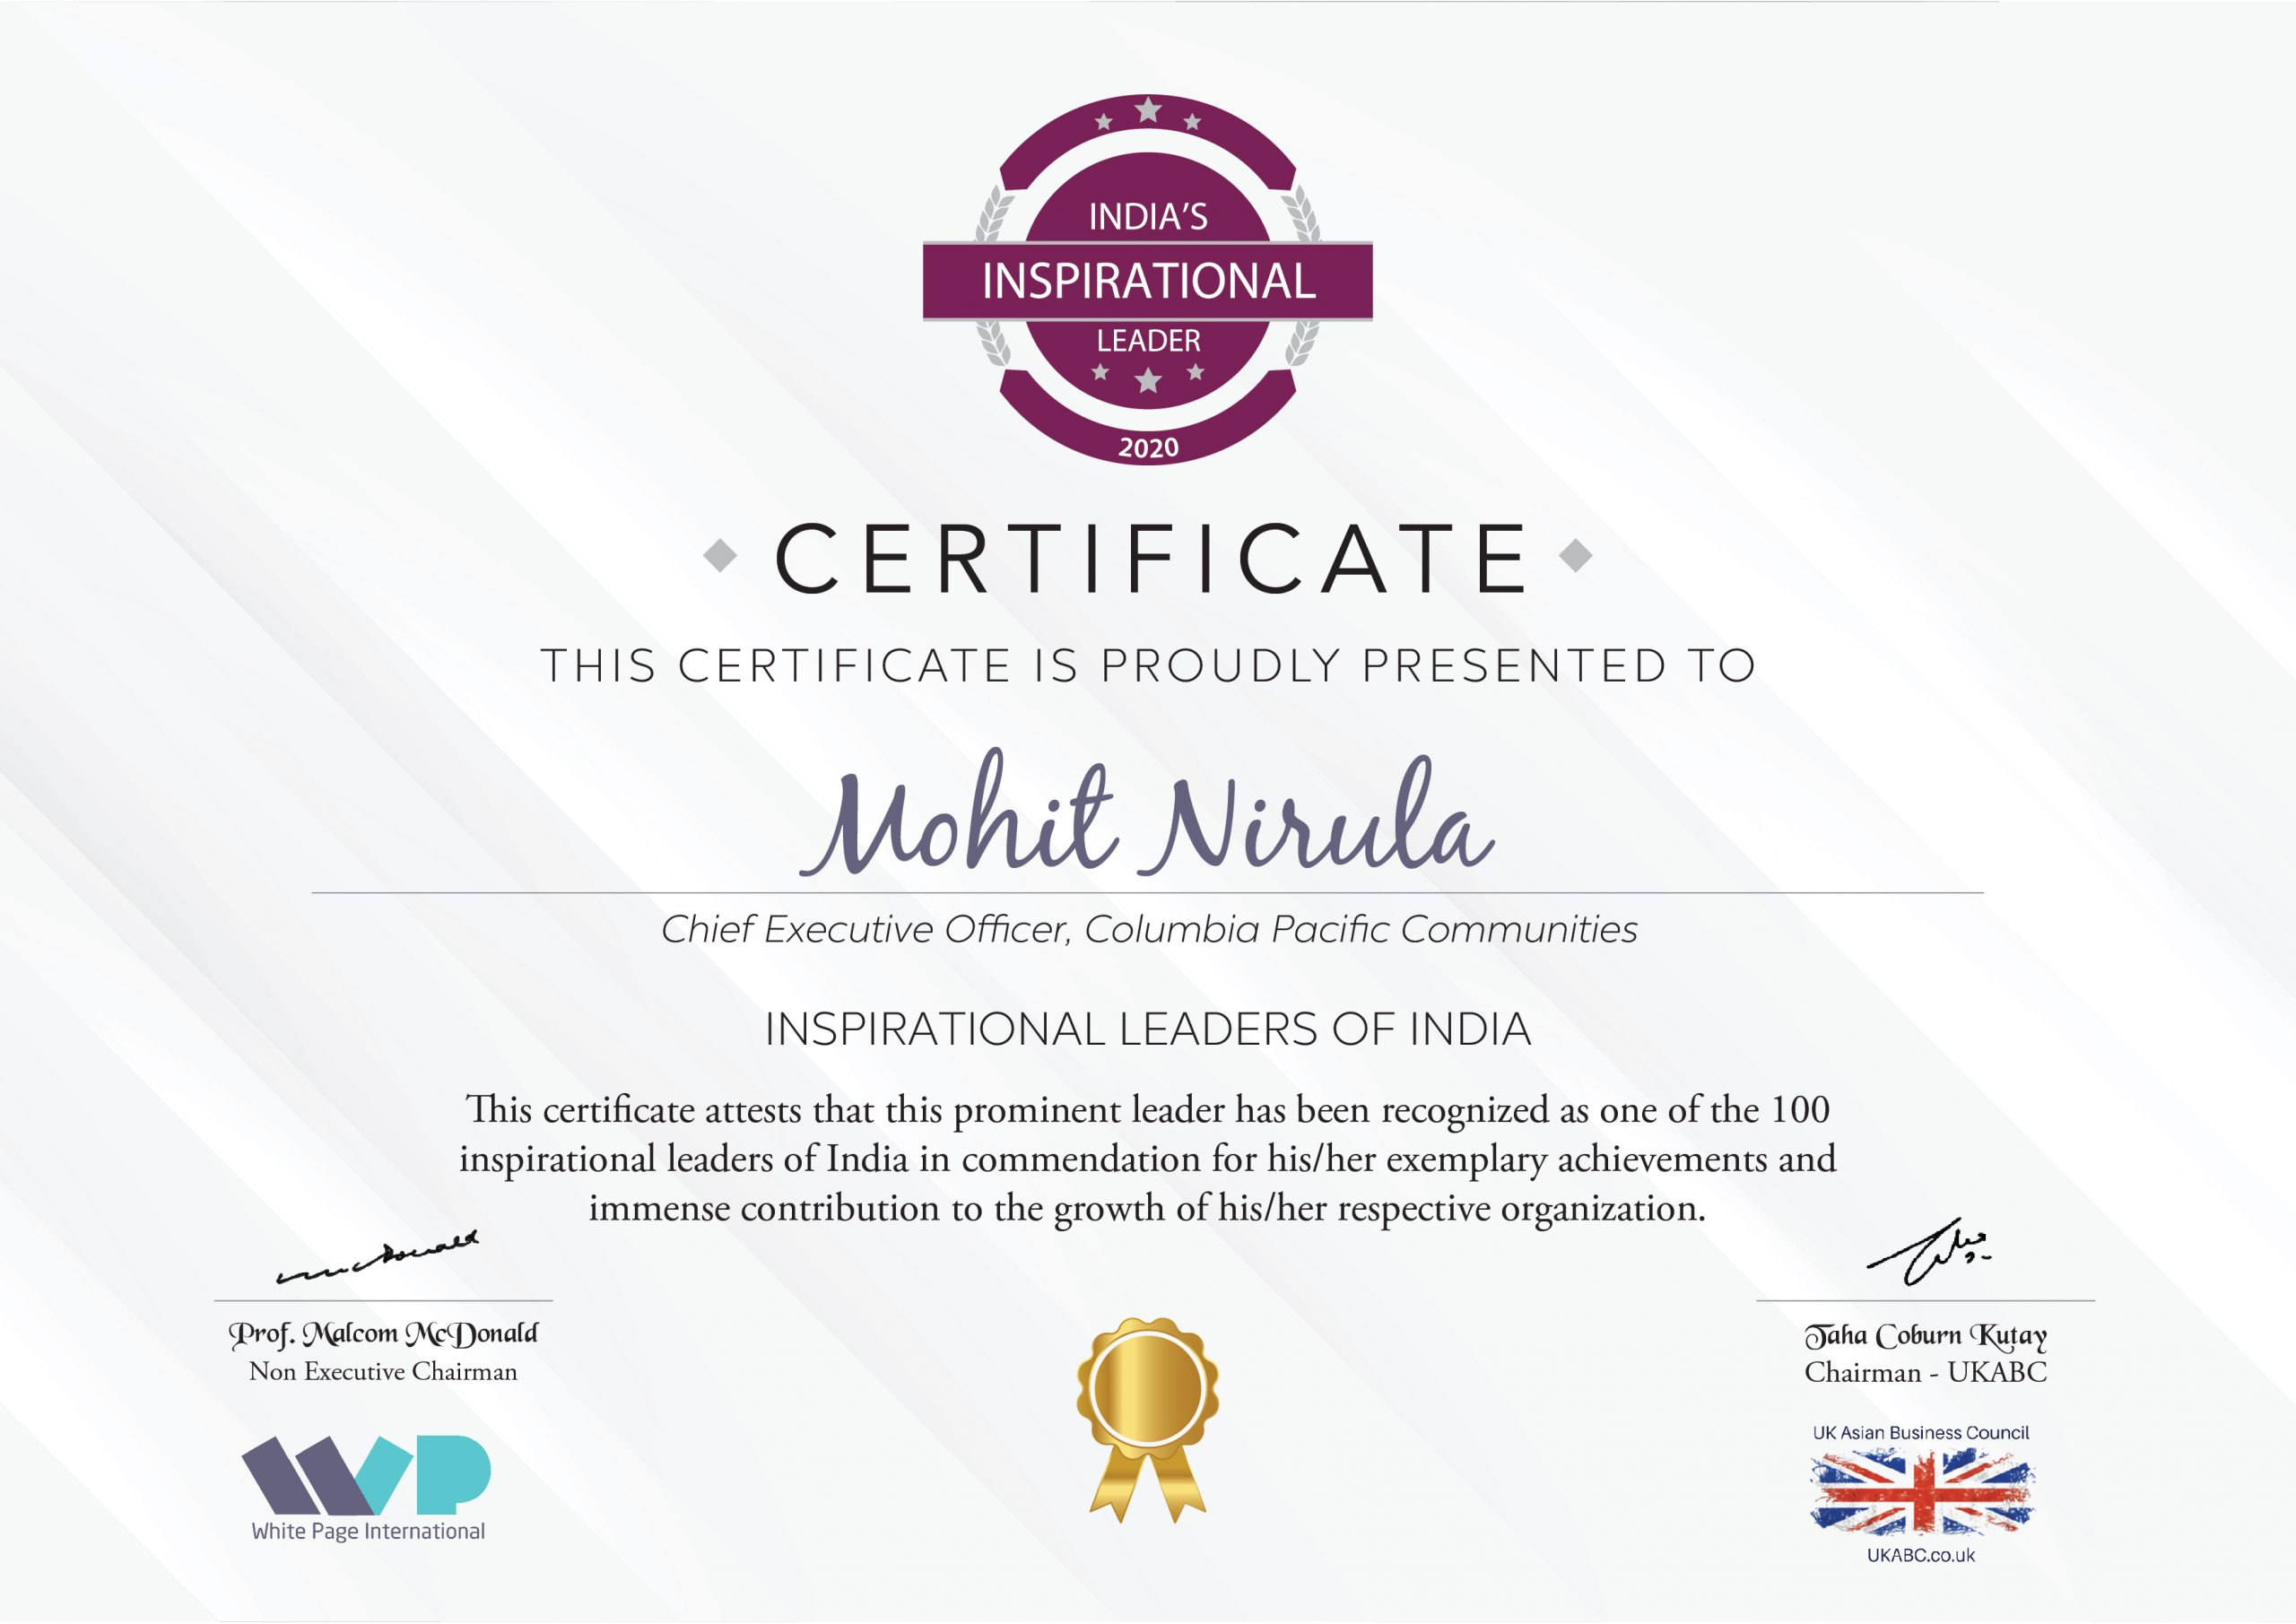 Mohit Nirula, CEO, Columbia Pacific Communities, recognised as one of the 100 inspirational leaders of India